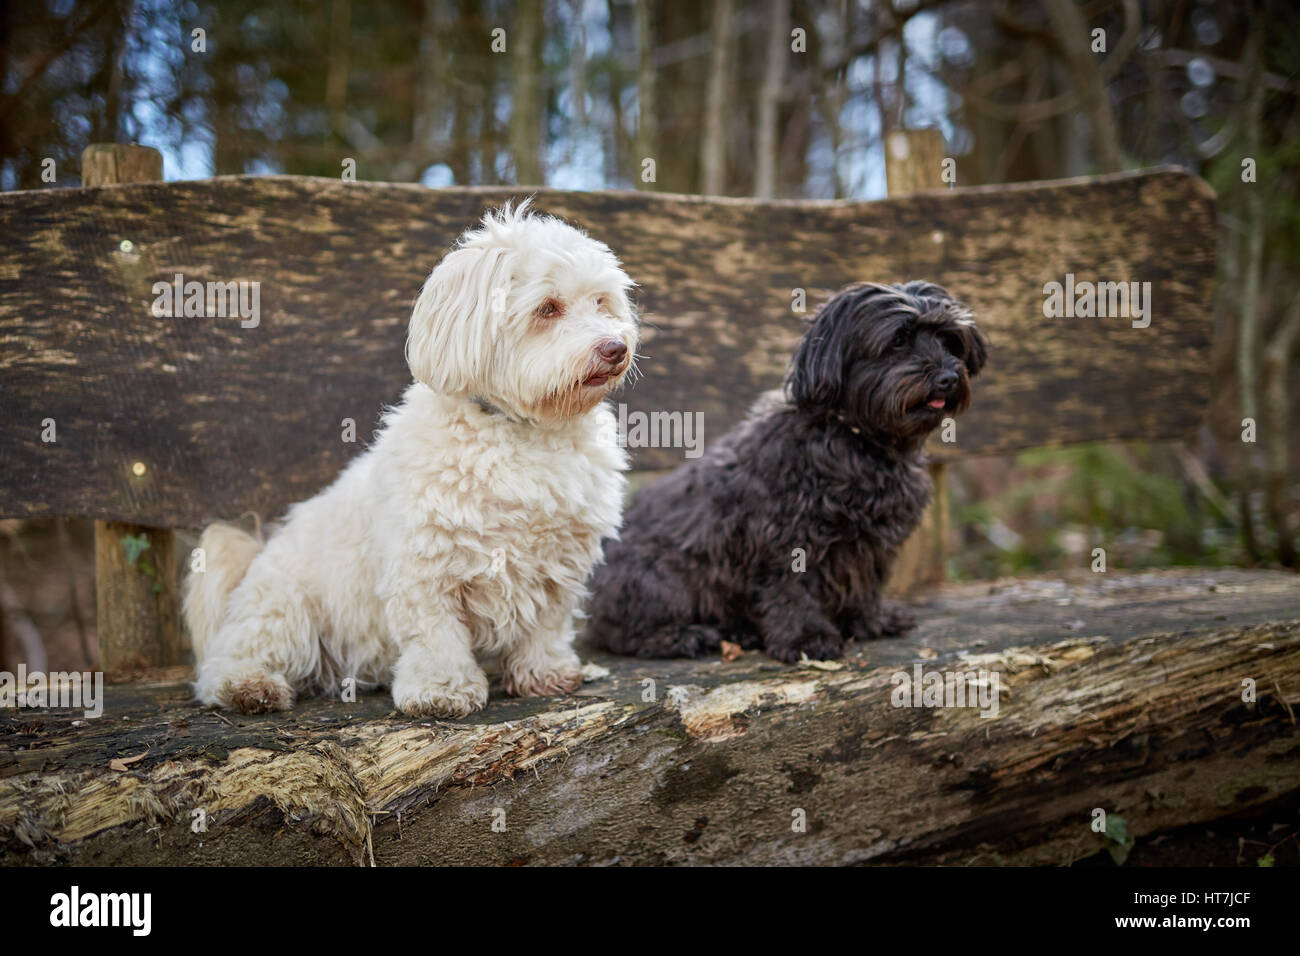 Holzbank Schwarz Portrait Of A Poodle Stockfotos And Portrait Of A Poodle